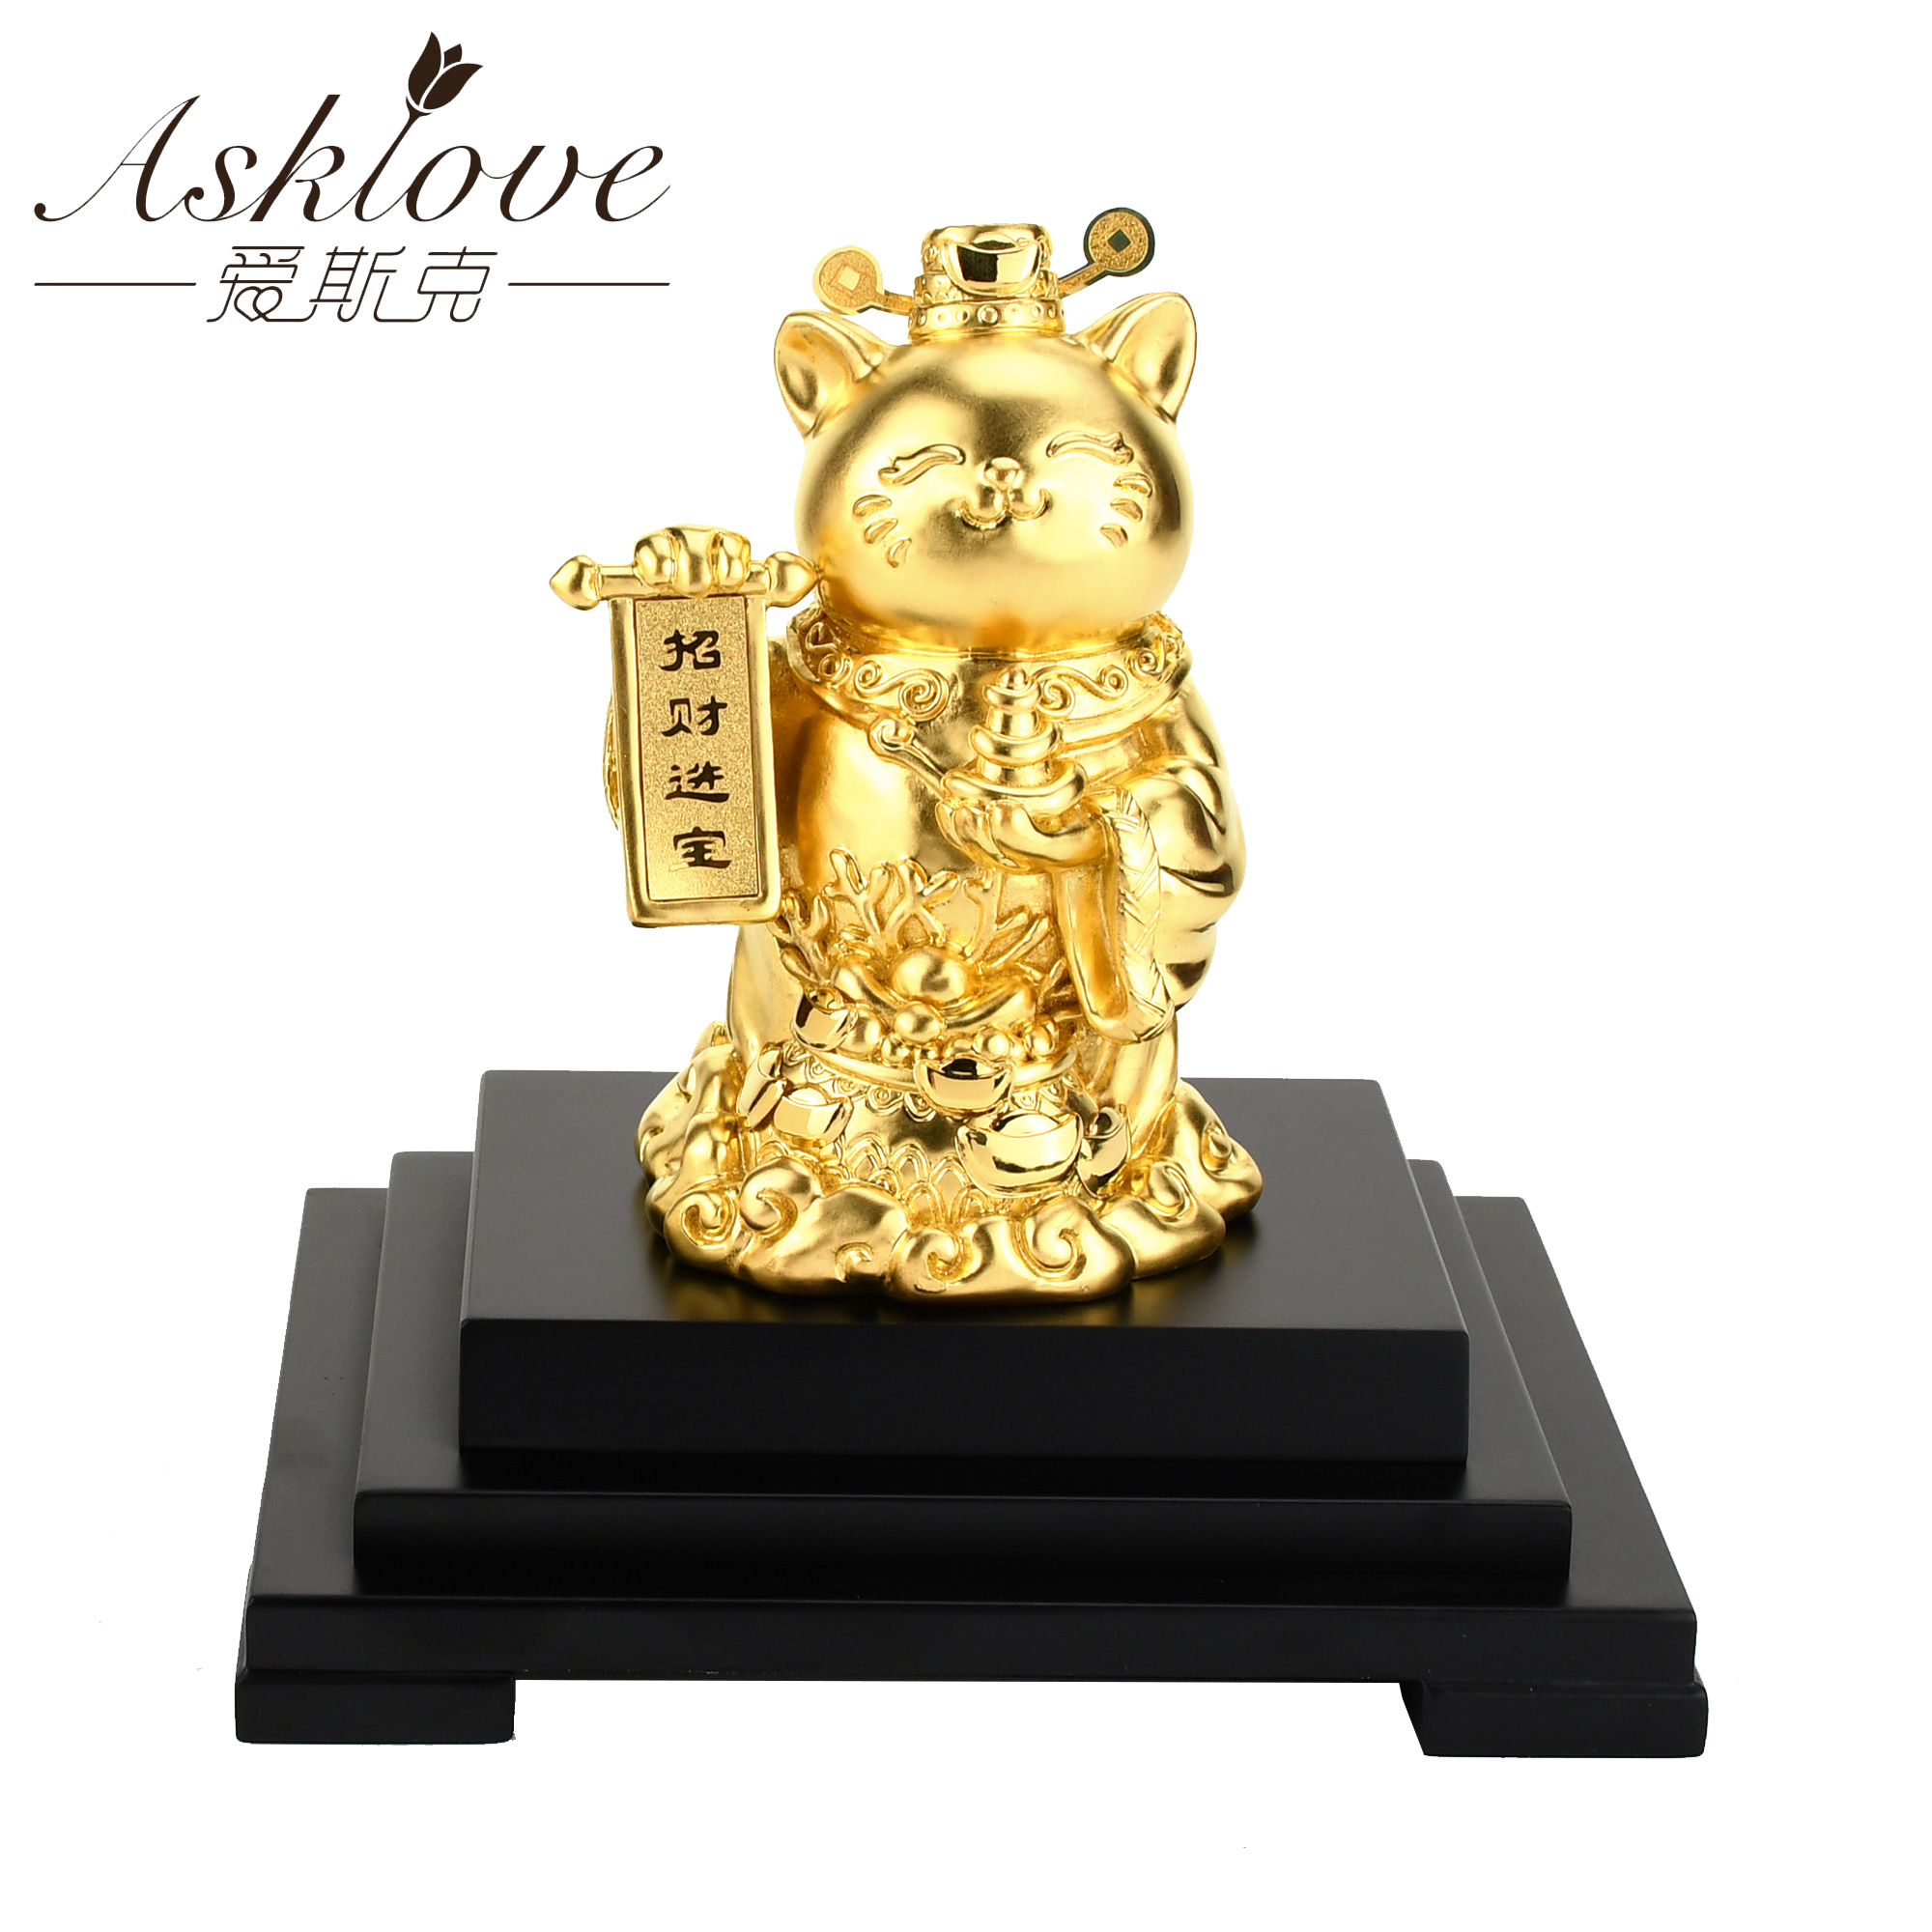 Chinese Lucky Cat Large Gold Foil Fortune Cat Wealth Crafts Welcoming Good Luck Waving Cat sculpture statue decor Car Ornament